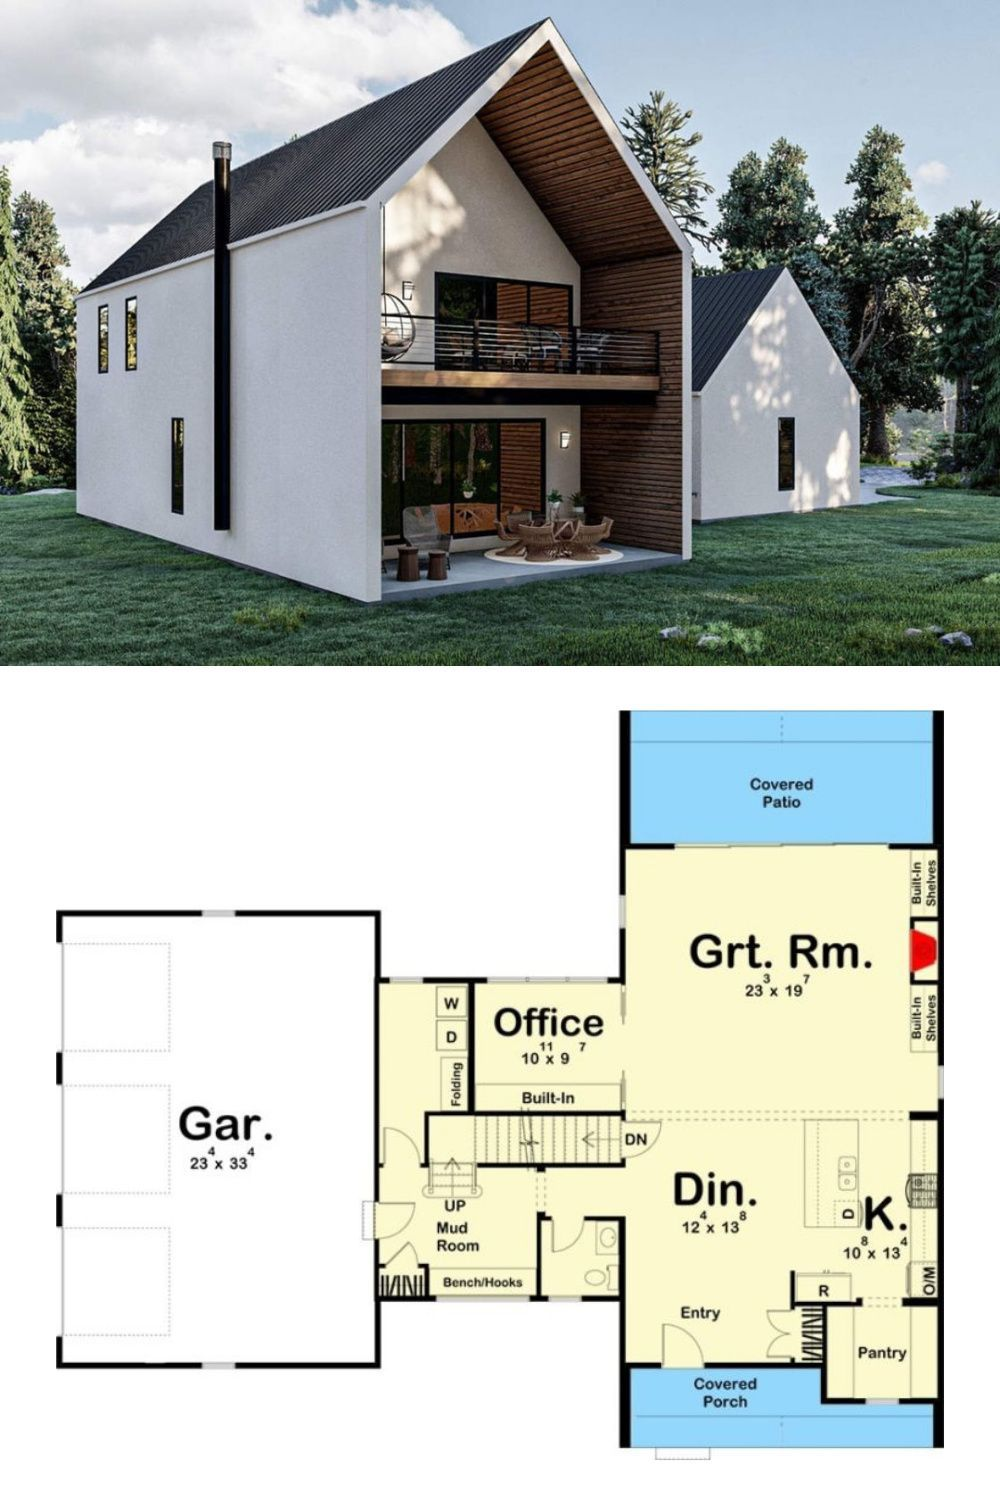 2 Story Ultra Modern Farmhouse House Plan with a Wide Open Floor Plan 2 Story 3 Bedroom Floor Plan